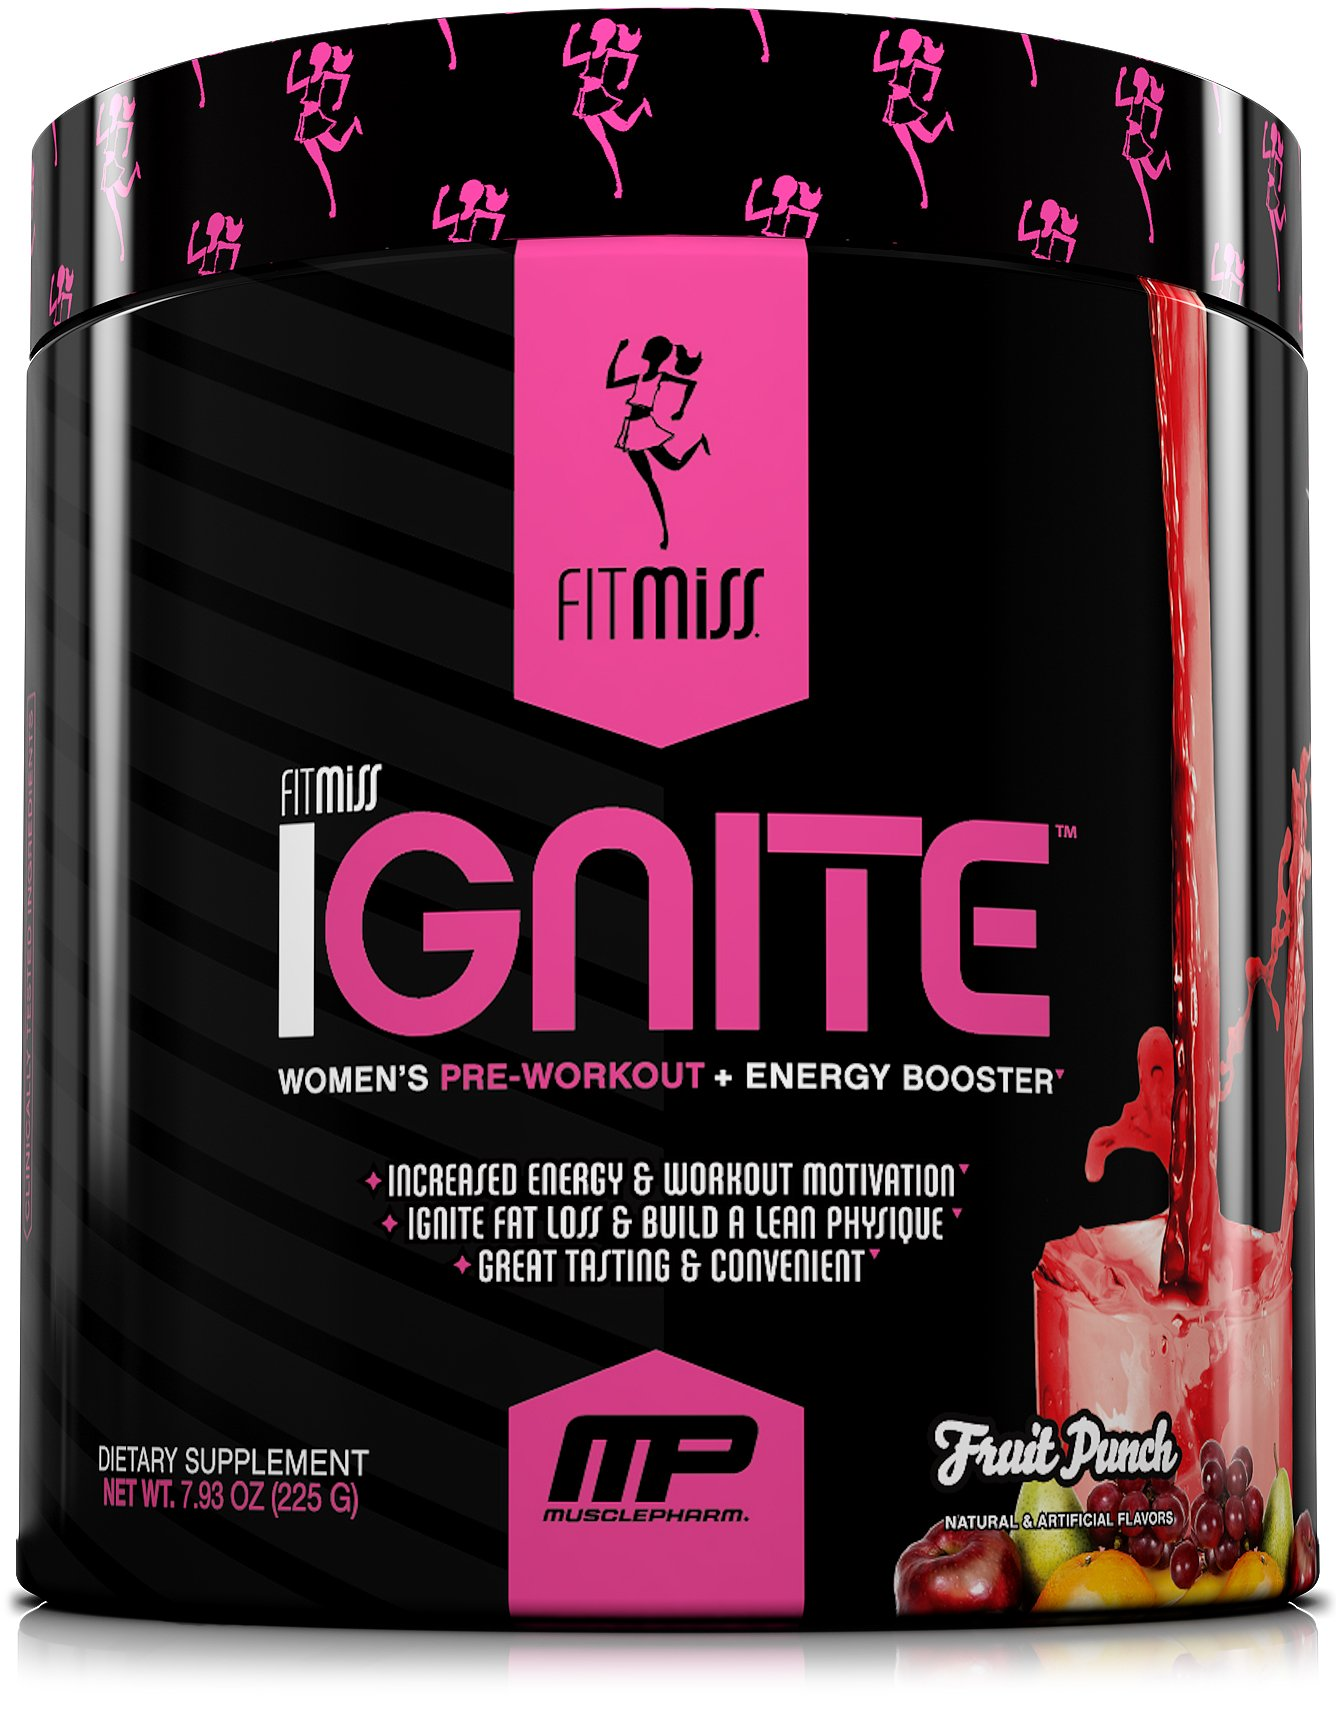 FitMiss Ignite, Women's Pre-Workout Supplement & Energy Booster for Fat Loss, Supports Energy & Workout Motivation, Fruit Punch, 30 Servings by FitMiss